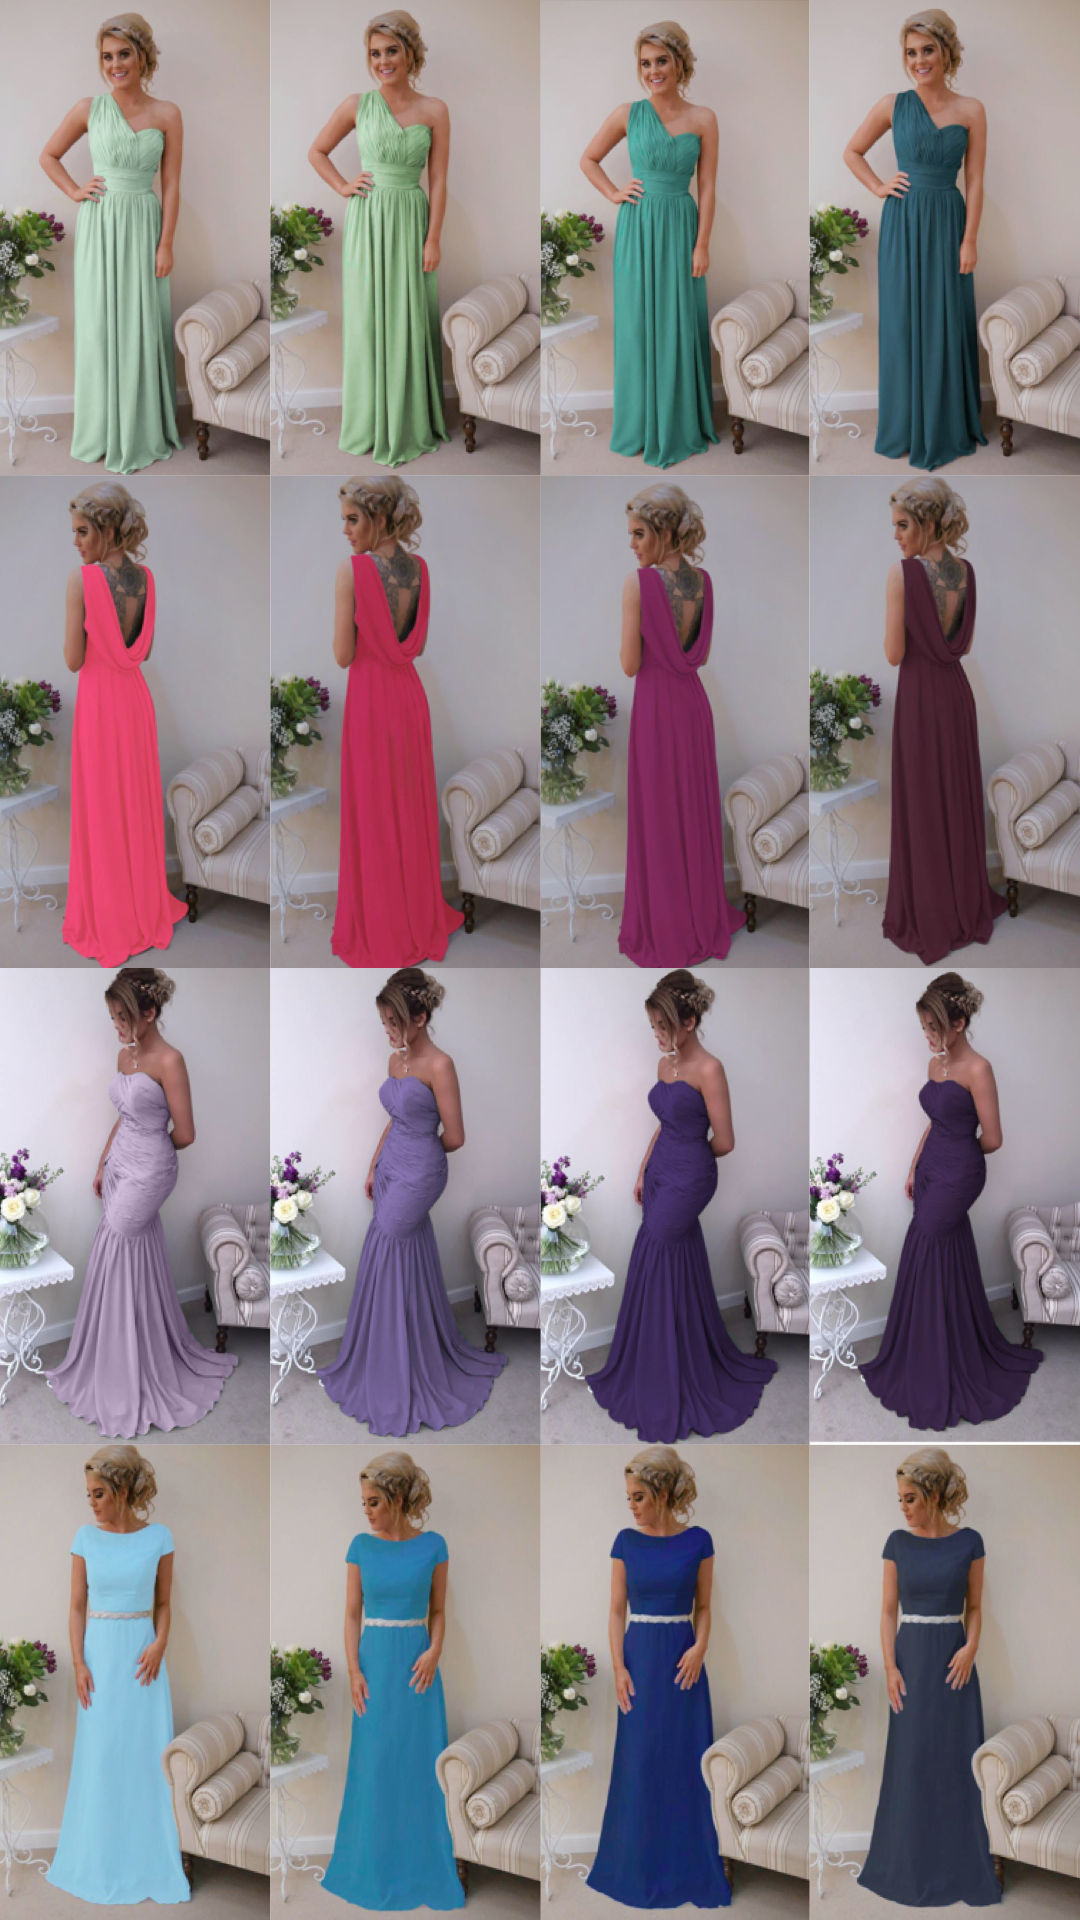 Custom Made Bridesmaid Dresses UK